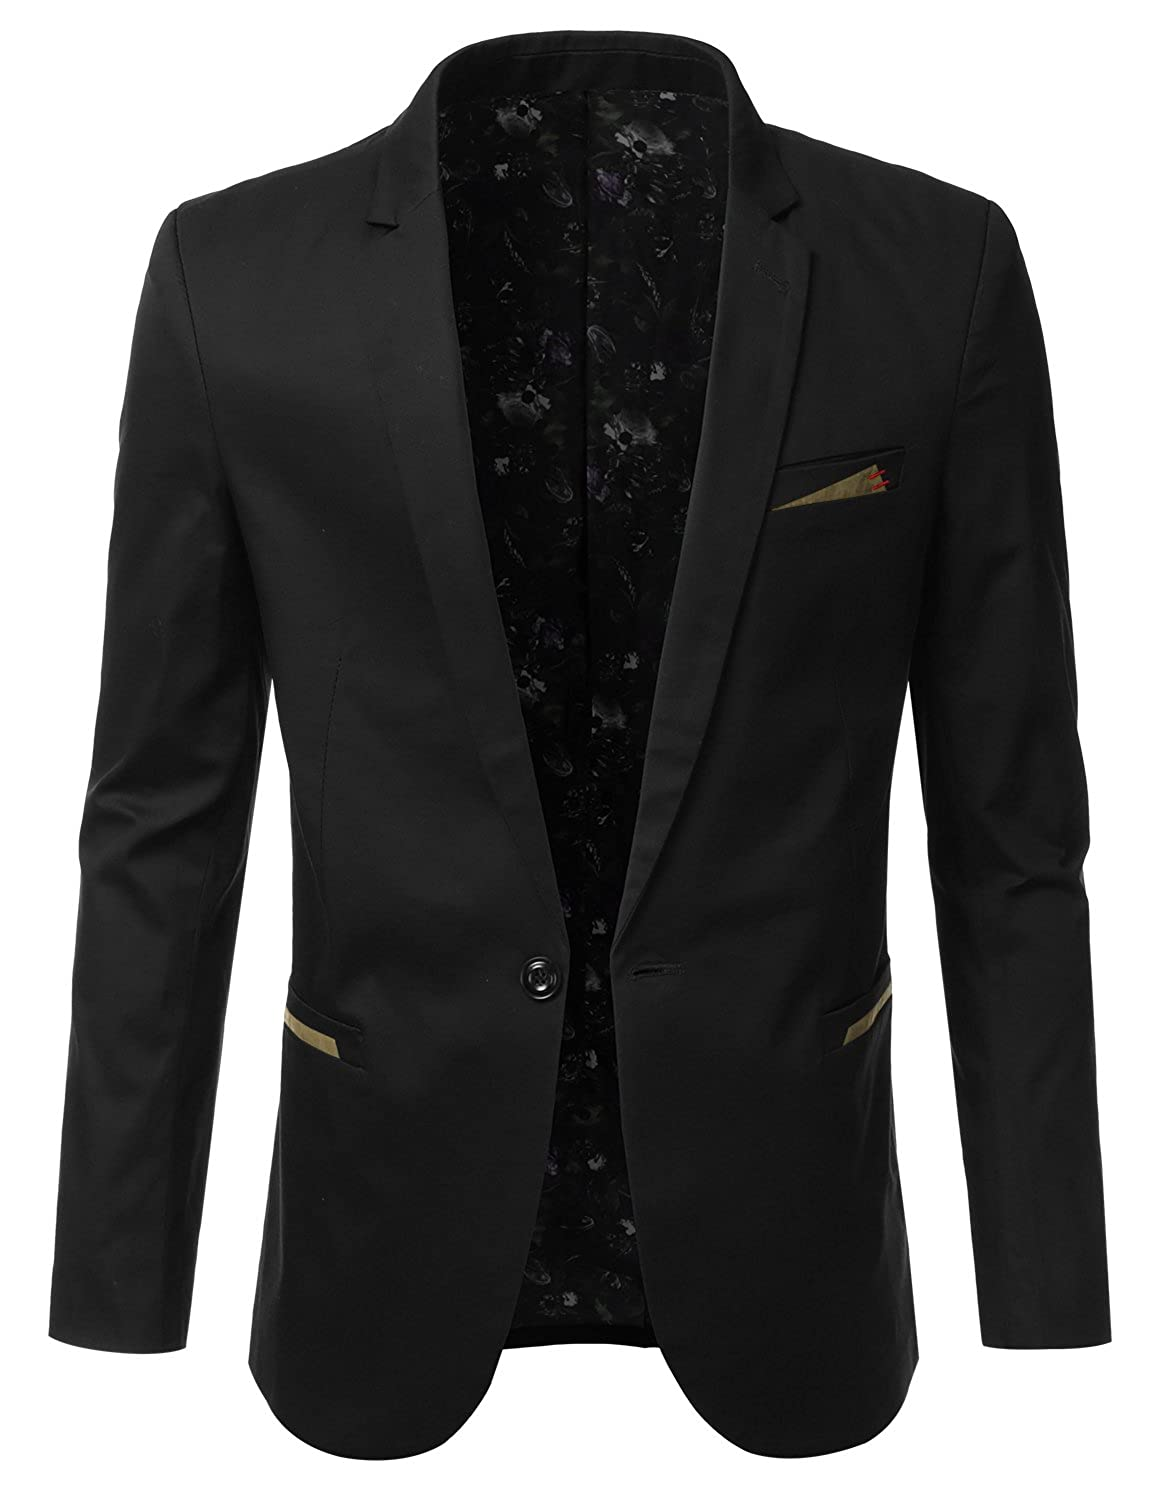 IDARBI Mens Slim Fit Casual Buttoned Blazer Suit Jacket AMOBL028